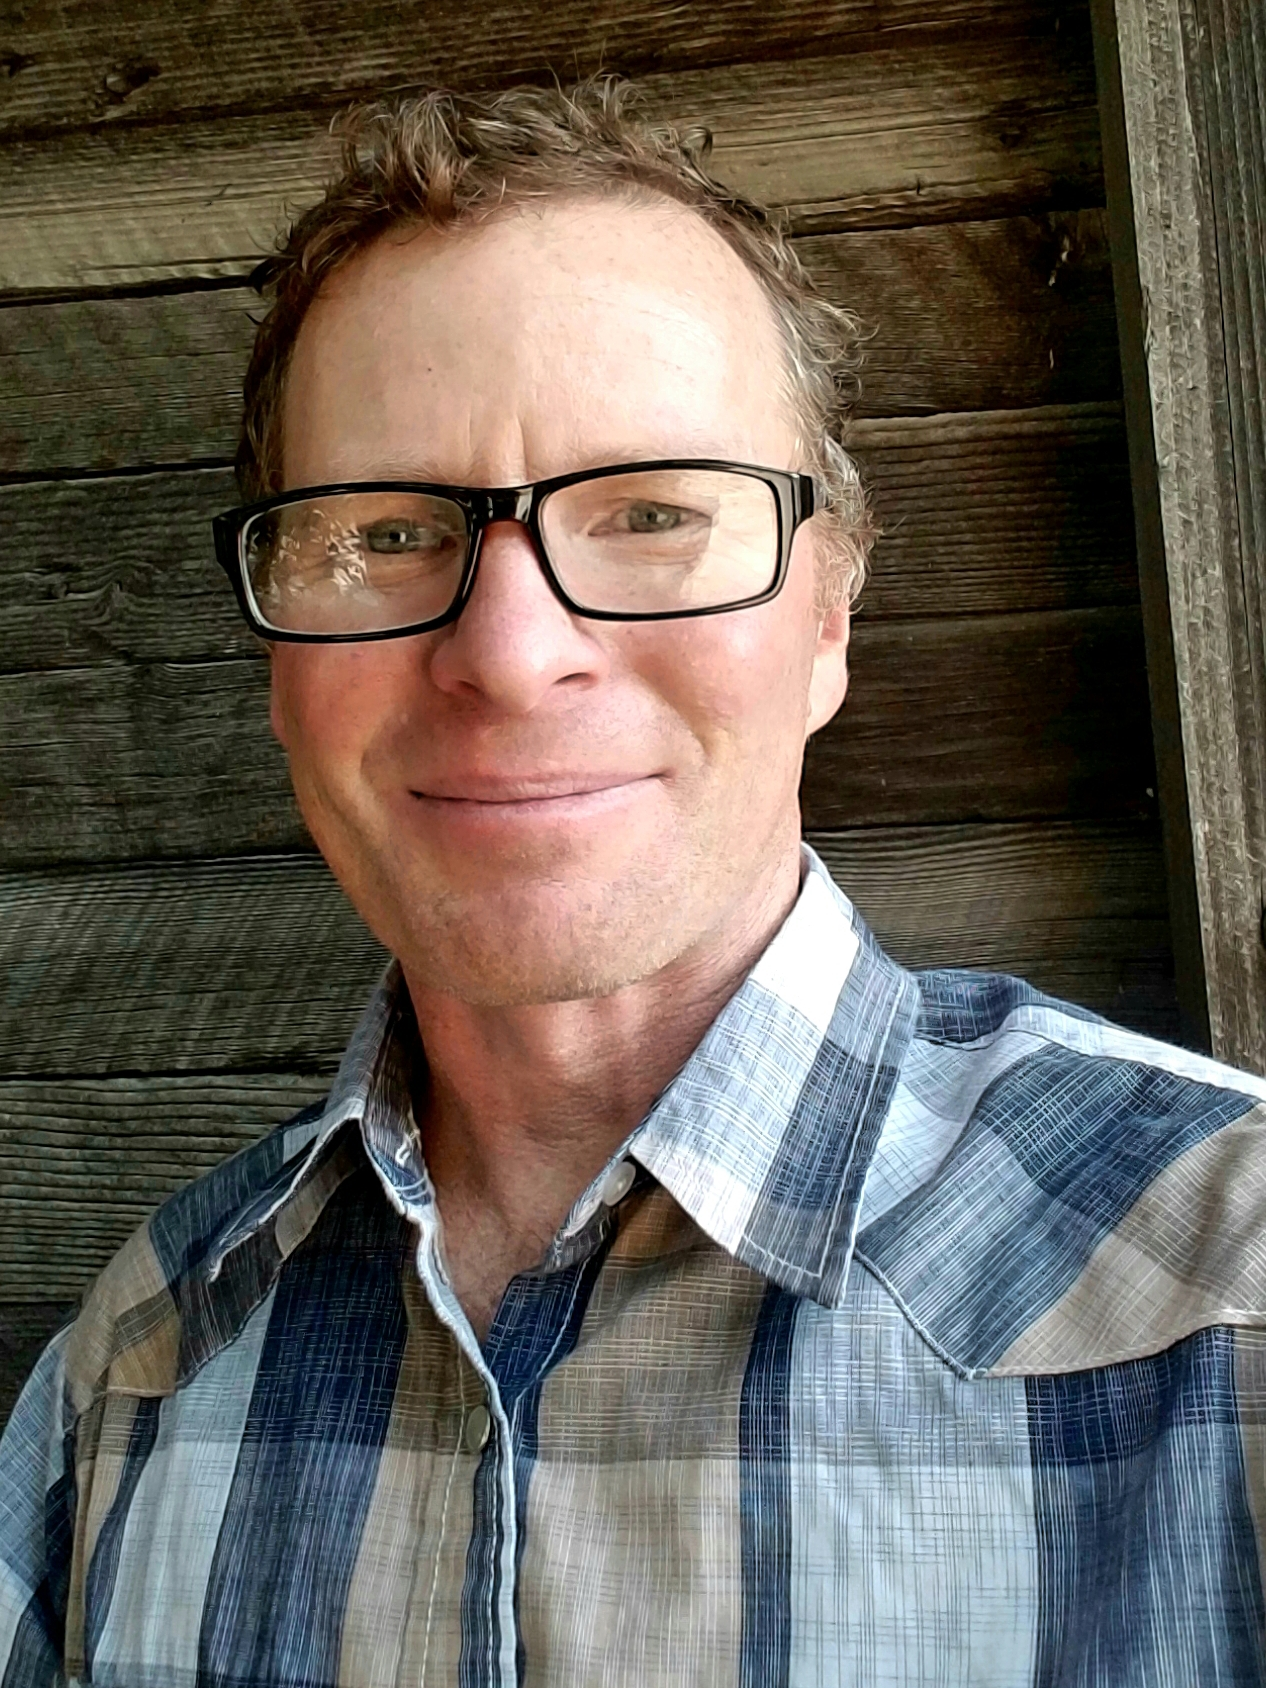 Craig Prather - Whitefish Real Estate Agent - RE/MAX of Whitefish, MT Client Based Service